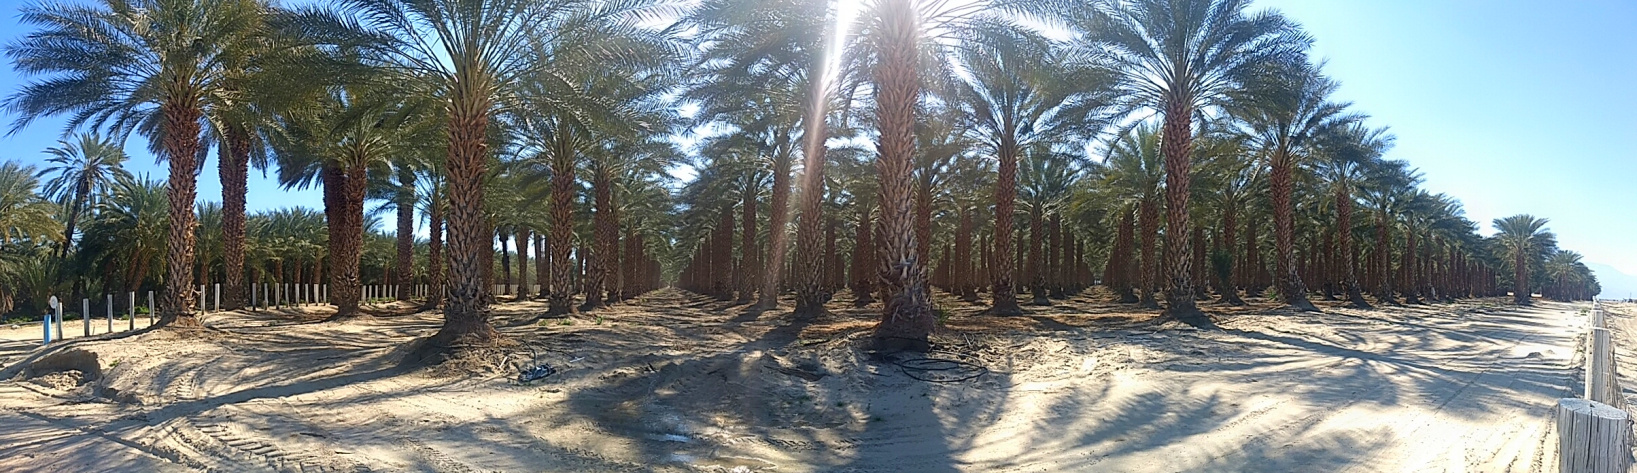 Date Palm orchard in southern California, in the desert near the Salton Sea